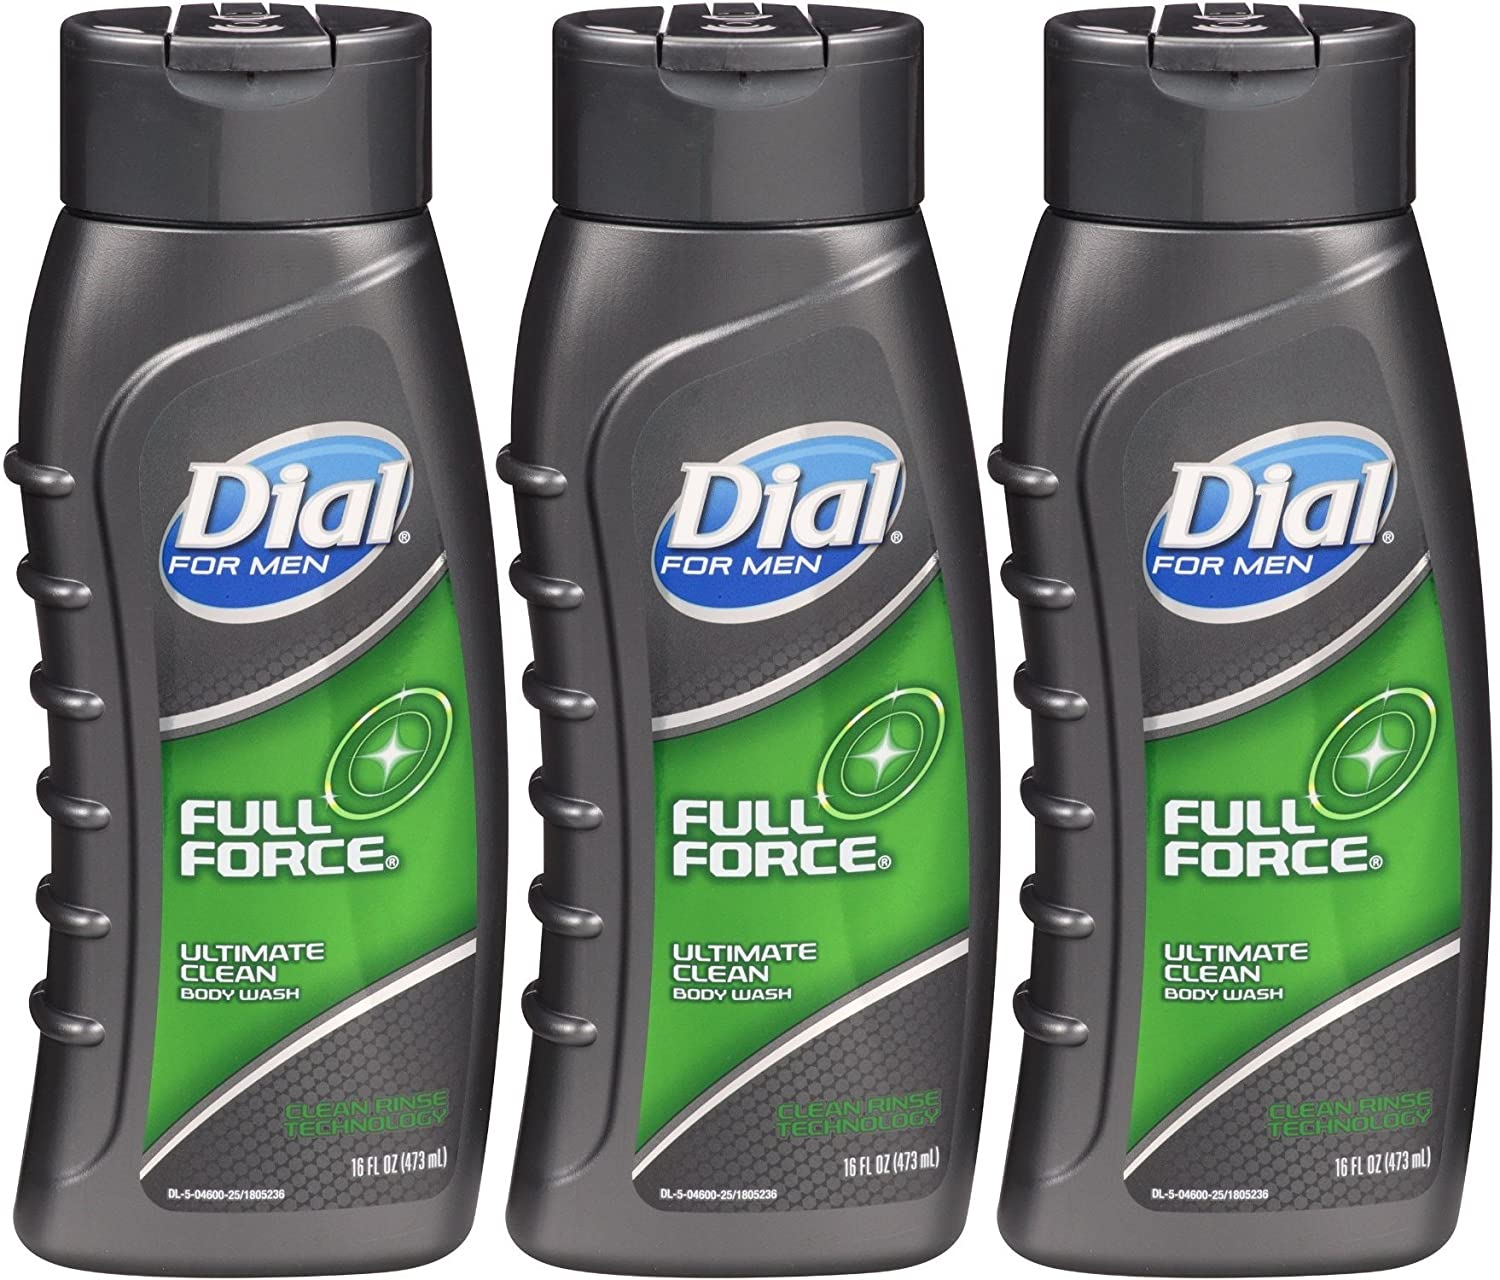 Dial for Men Ultimate Clean Body Wash, Full Force, 16 Oz (Pack of 3)